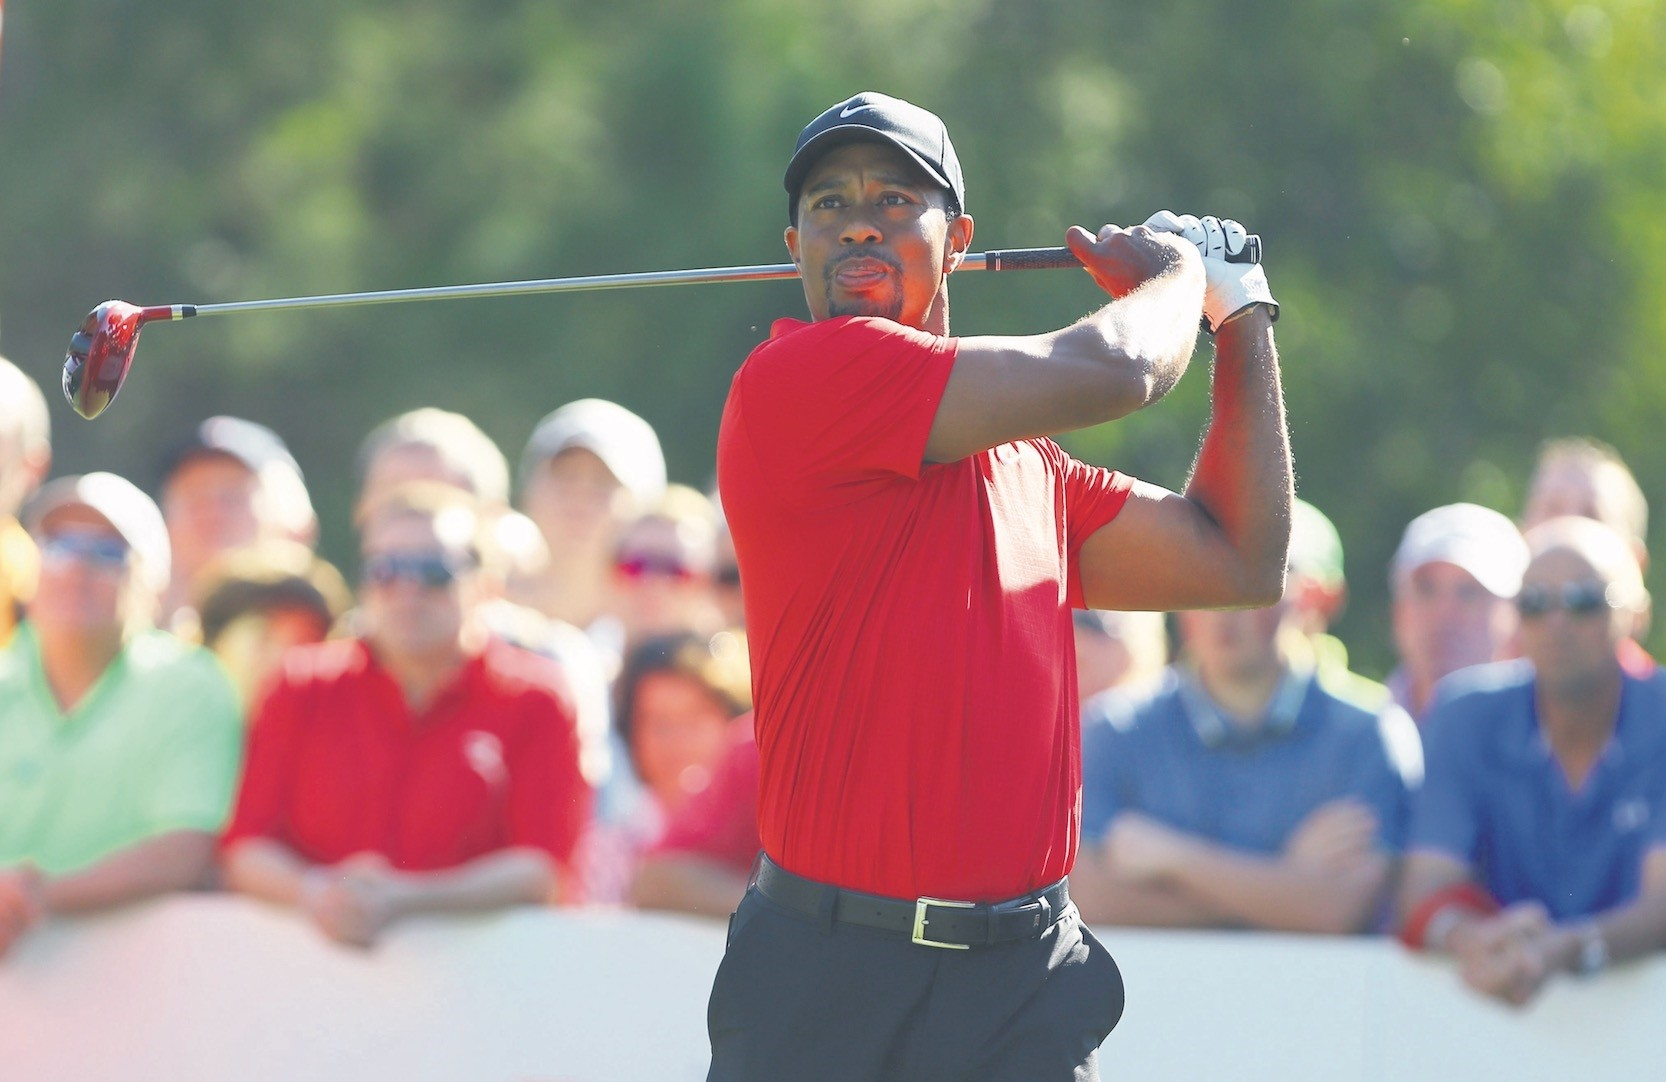 Tiger Woods plays a shot from the first tee during the final of the Turkish Open at the Montgomerie Maxx Royal Course in Antalya, Nov. 10, 2013.